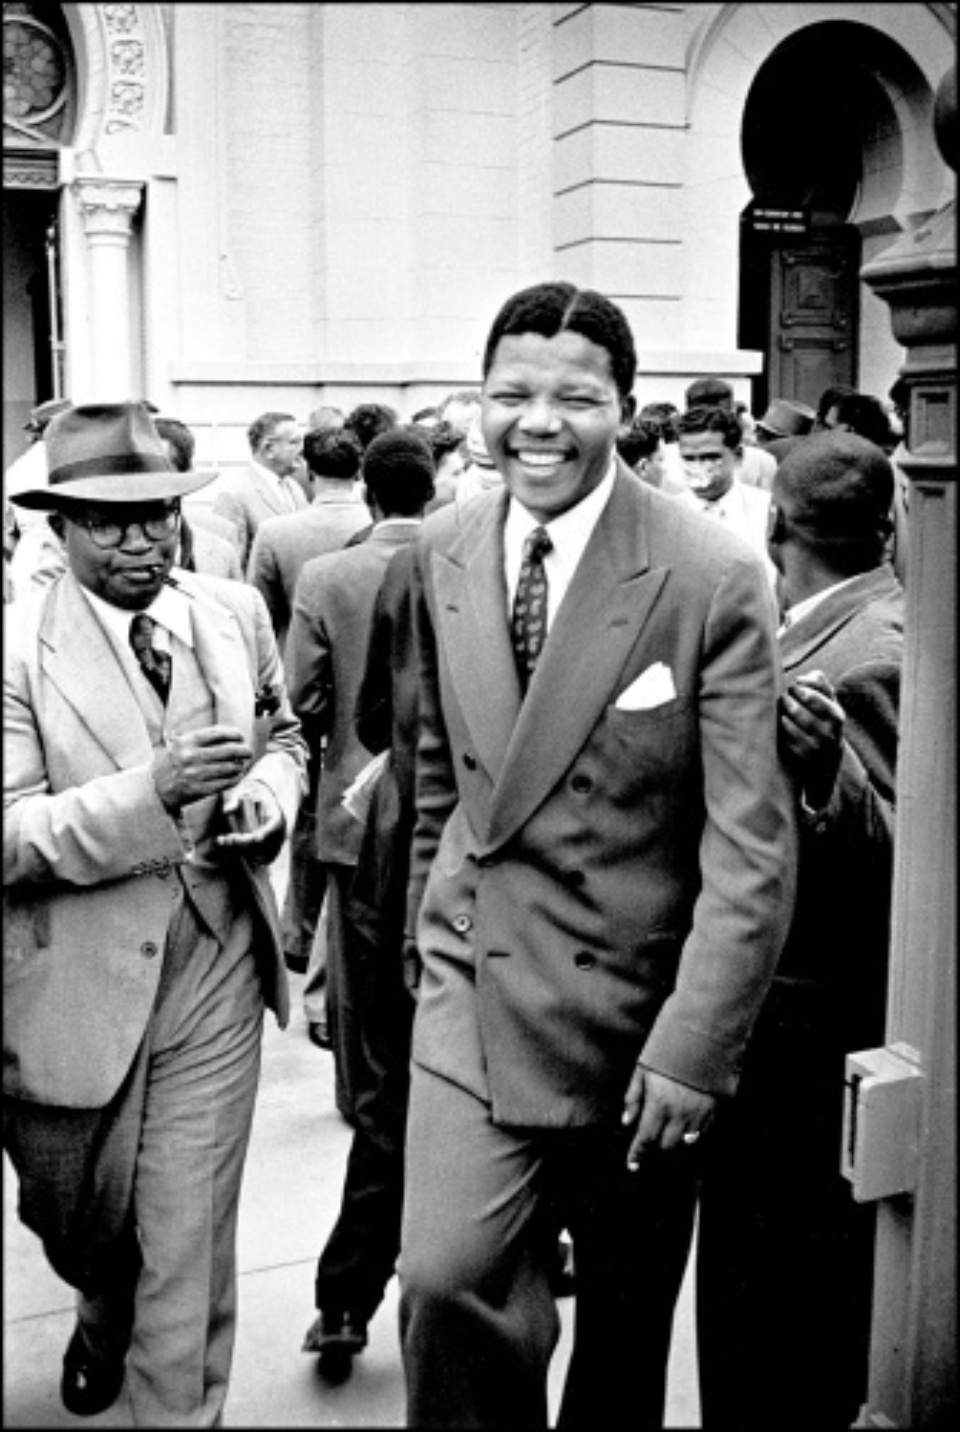 Jürgen Schadeberg Nelson Mandela during the Treason Trial Pretoria, 1958 Signed, titled and dated Gelatin silver print, printed later